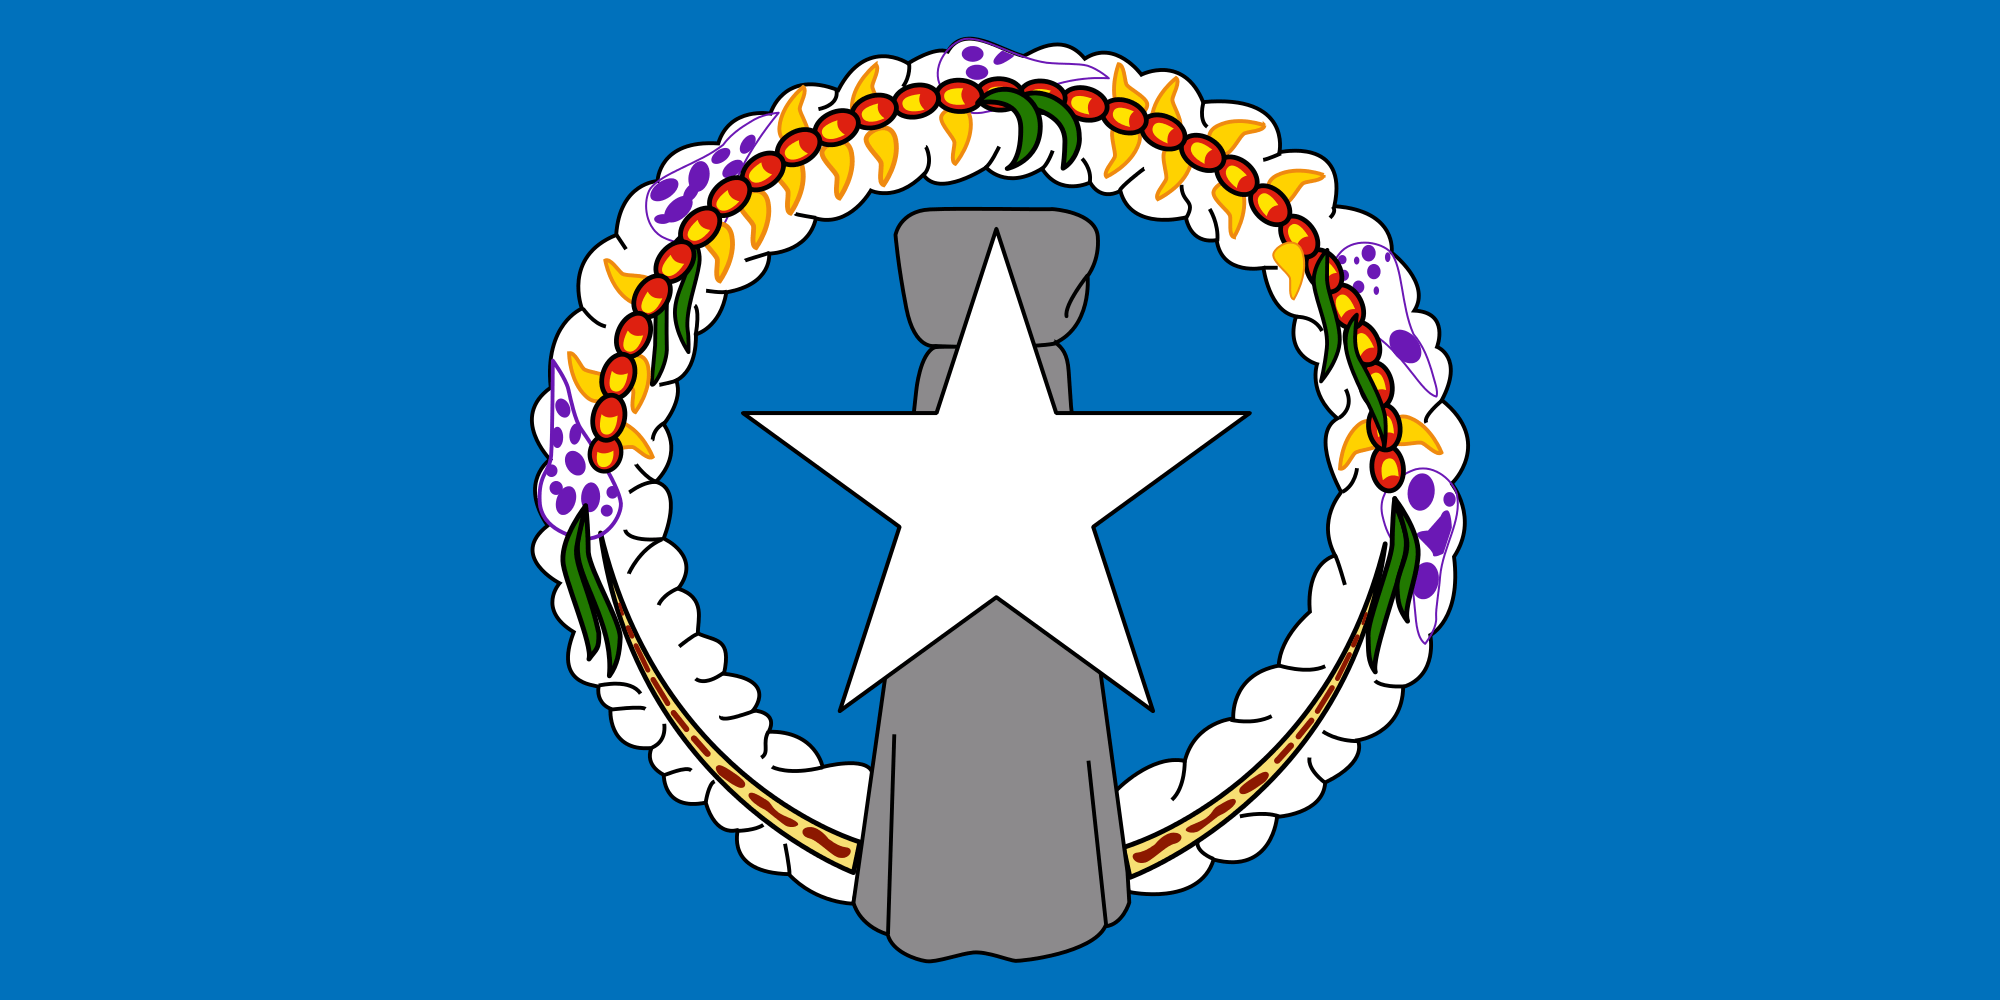 Flag of the Northern Mariana Islands